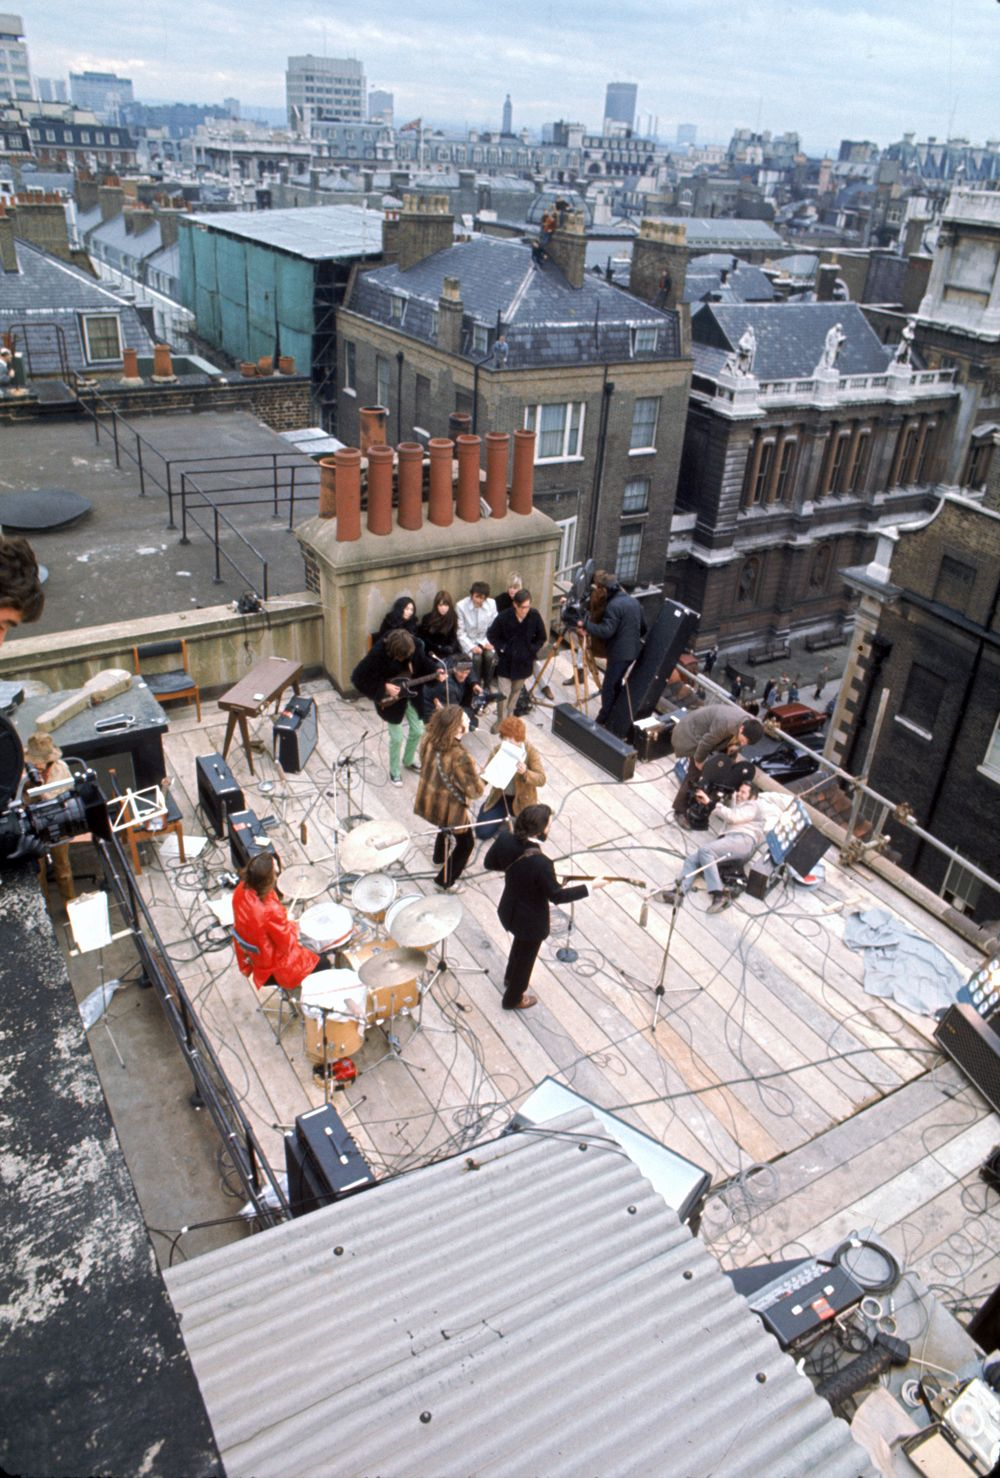 The Beatles Final Rooftop Performance For The Film Let It